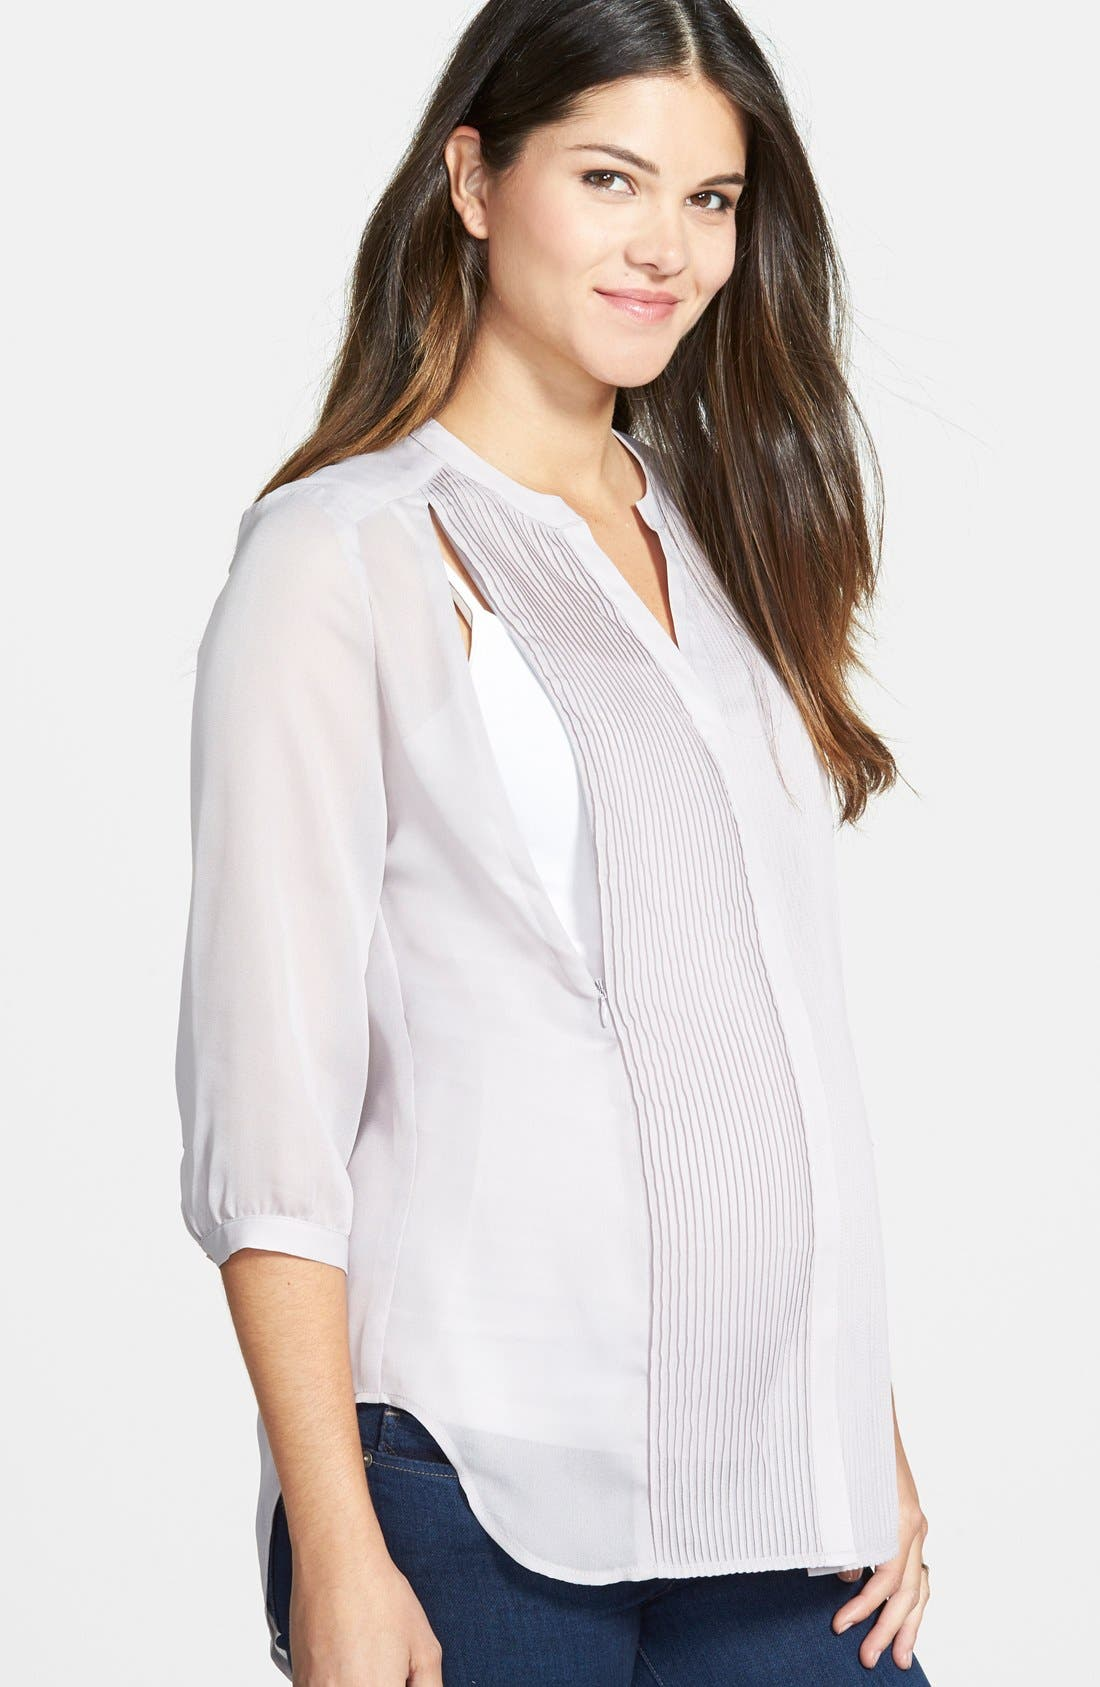 'Audrey' Maternity/Nursing Tuxedo Blouse,                             Alternate thumbnail 2, color,                             GREY